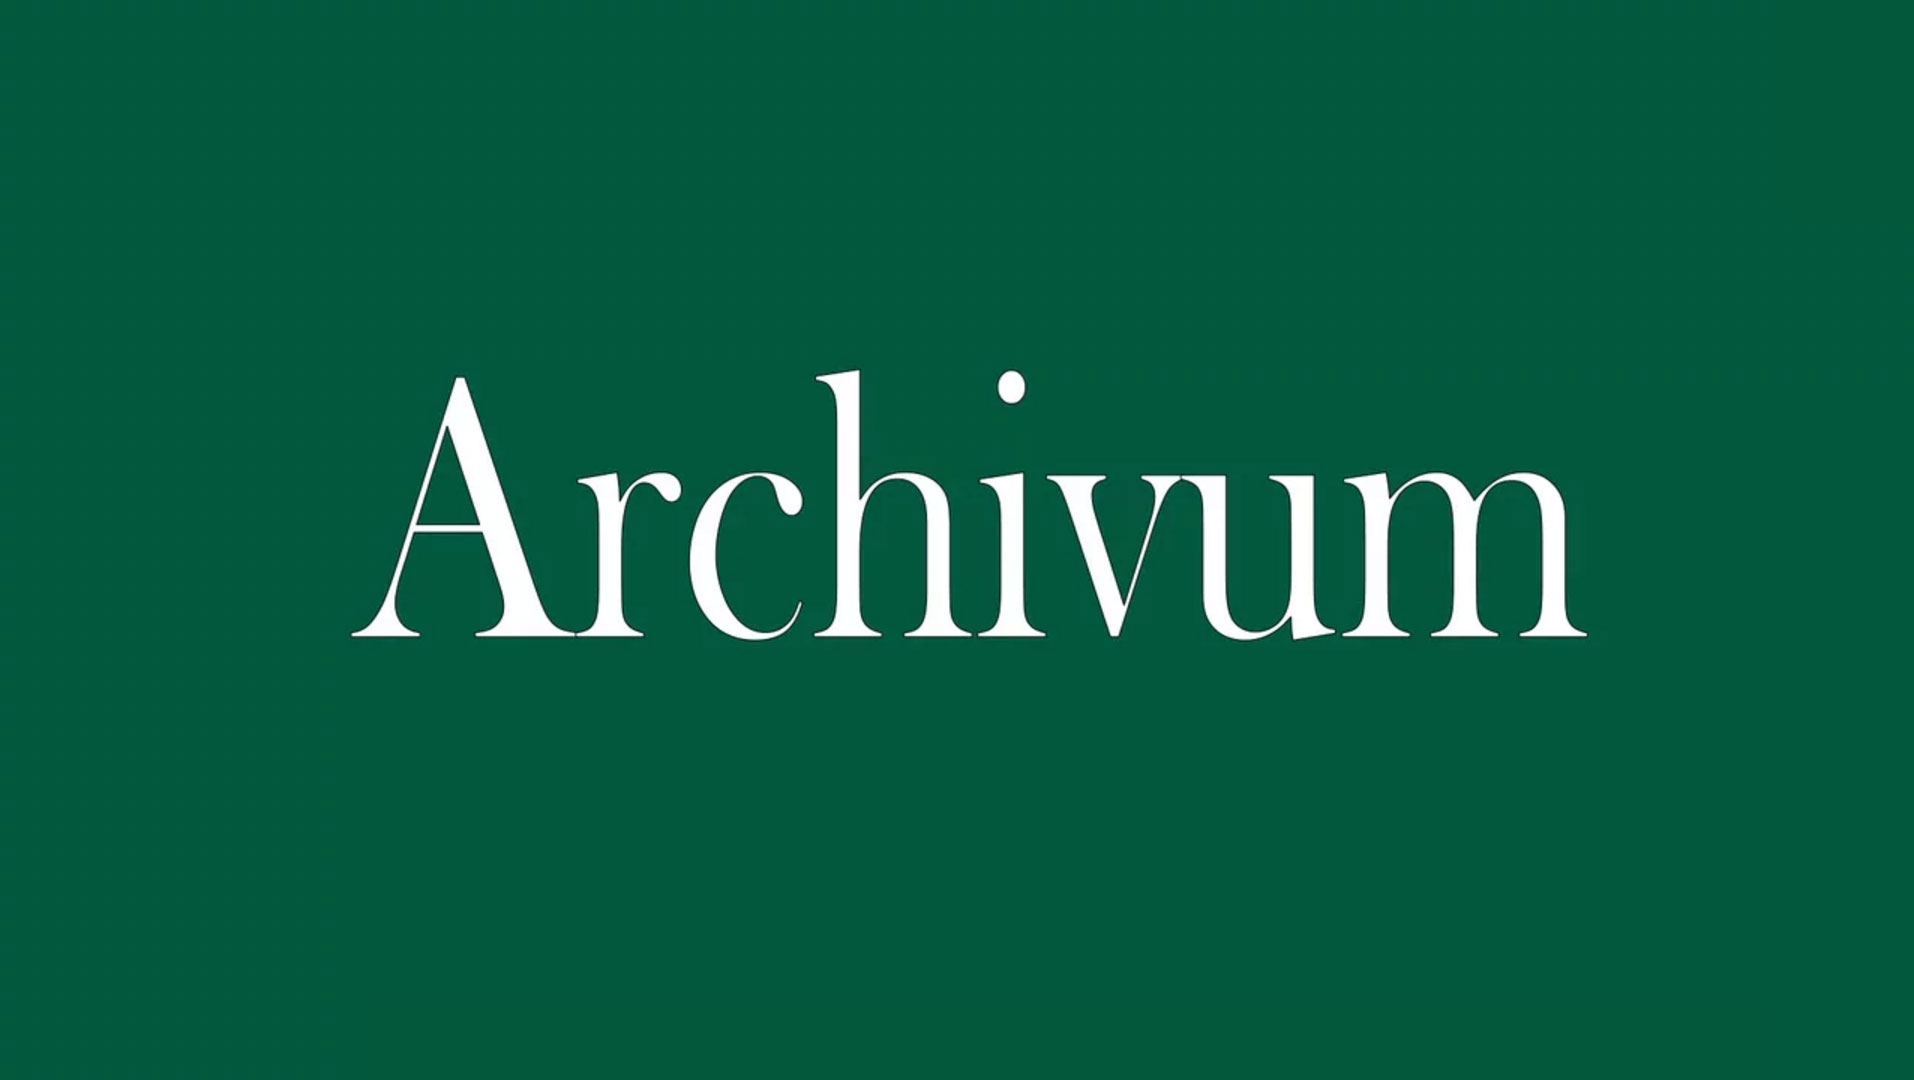 Archivum Video